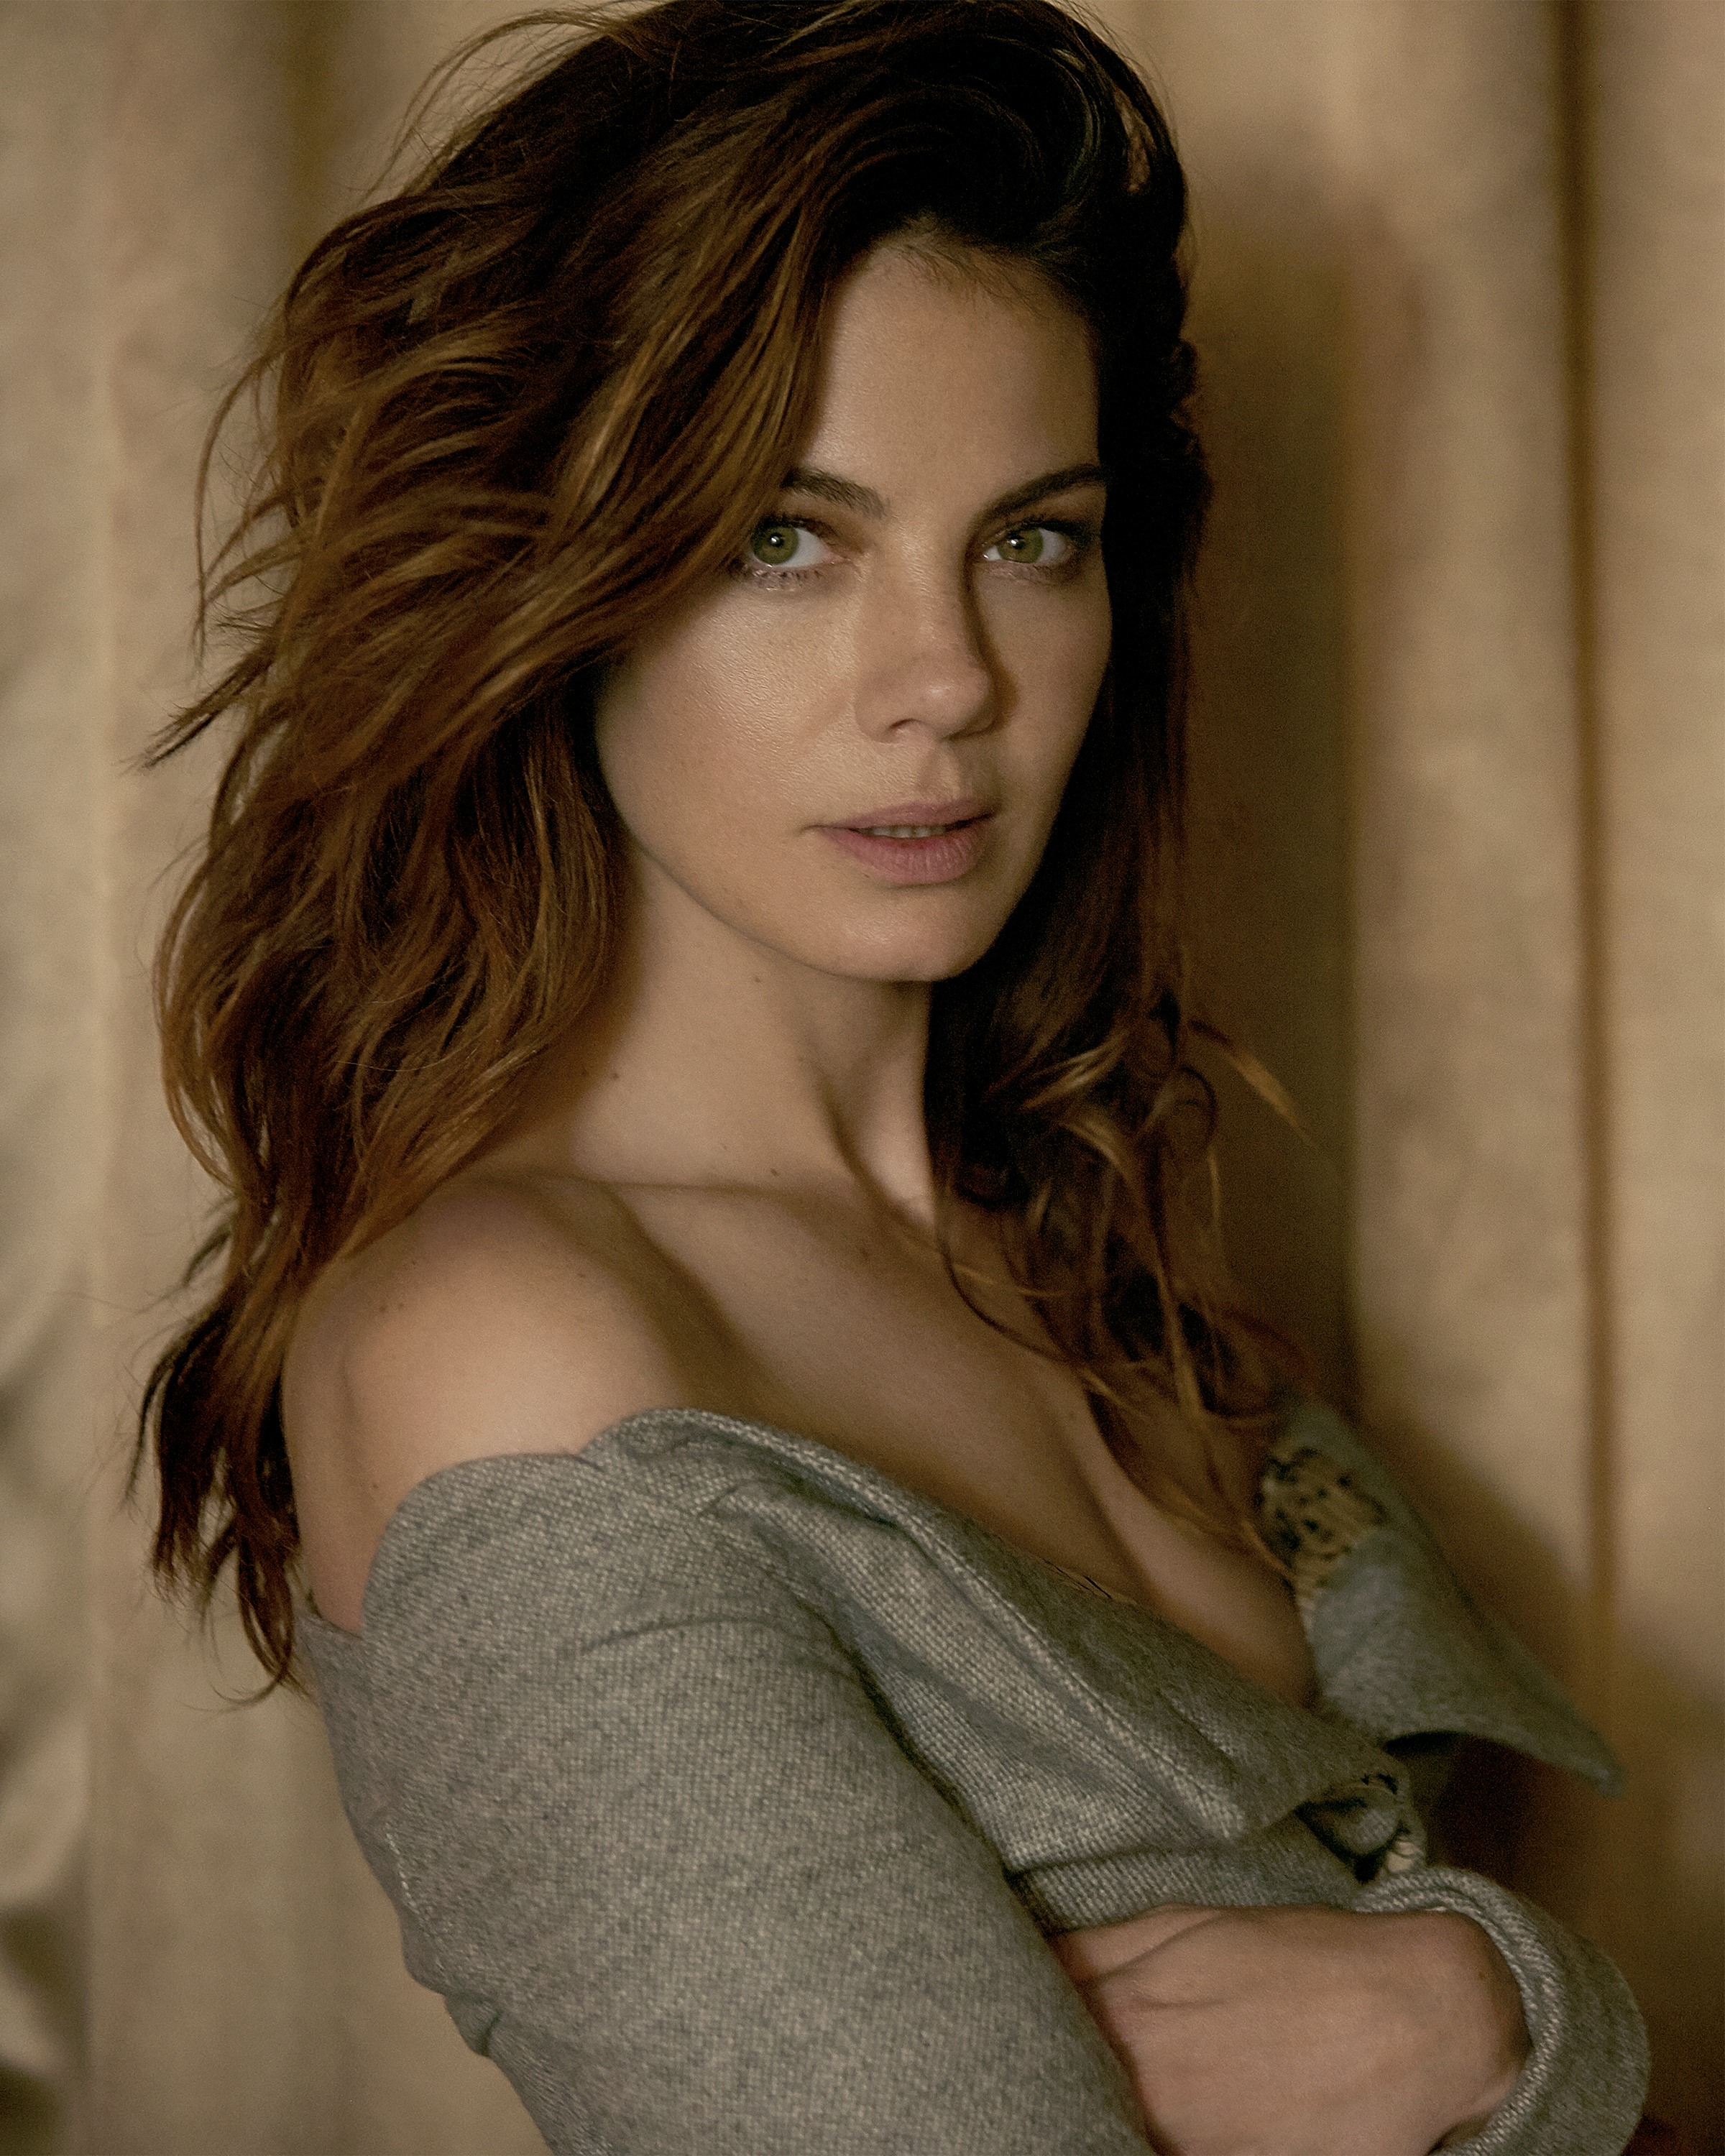 Pussy Young Michelle Monaghan naked photo 2017